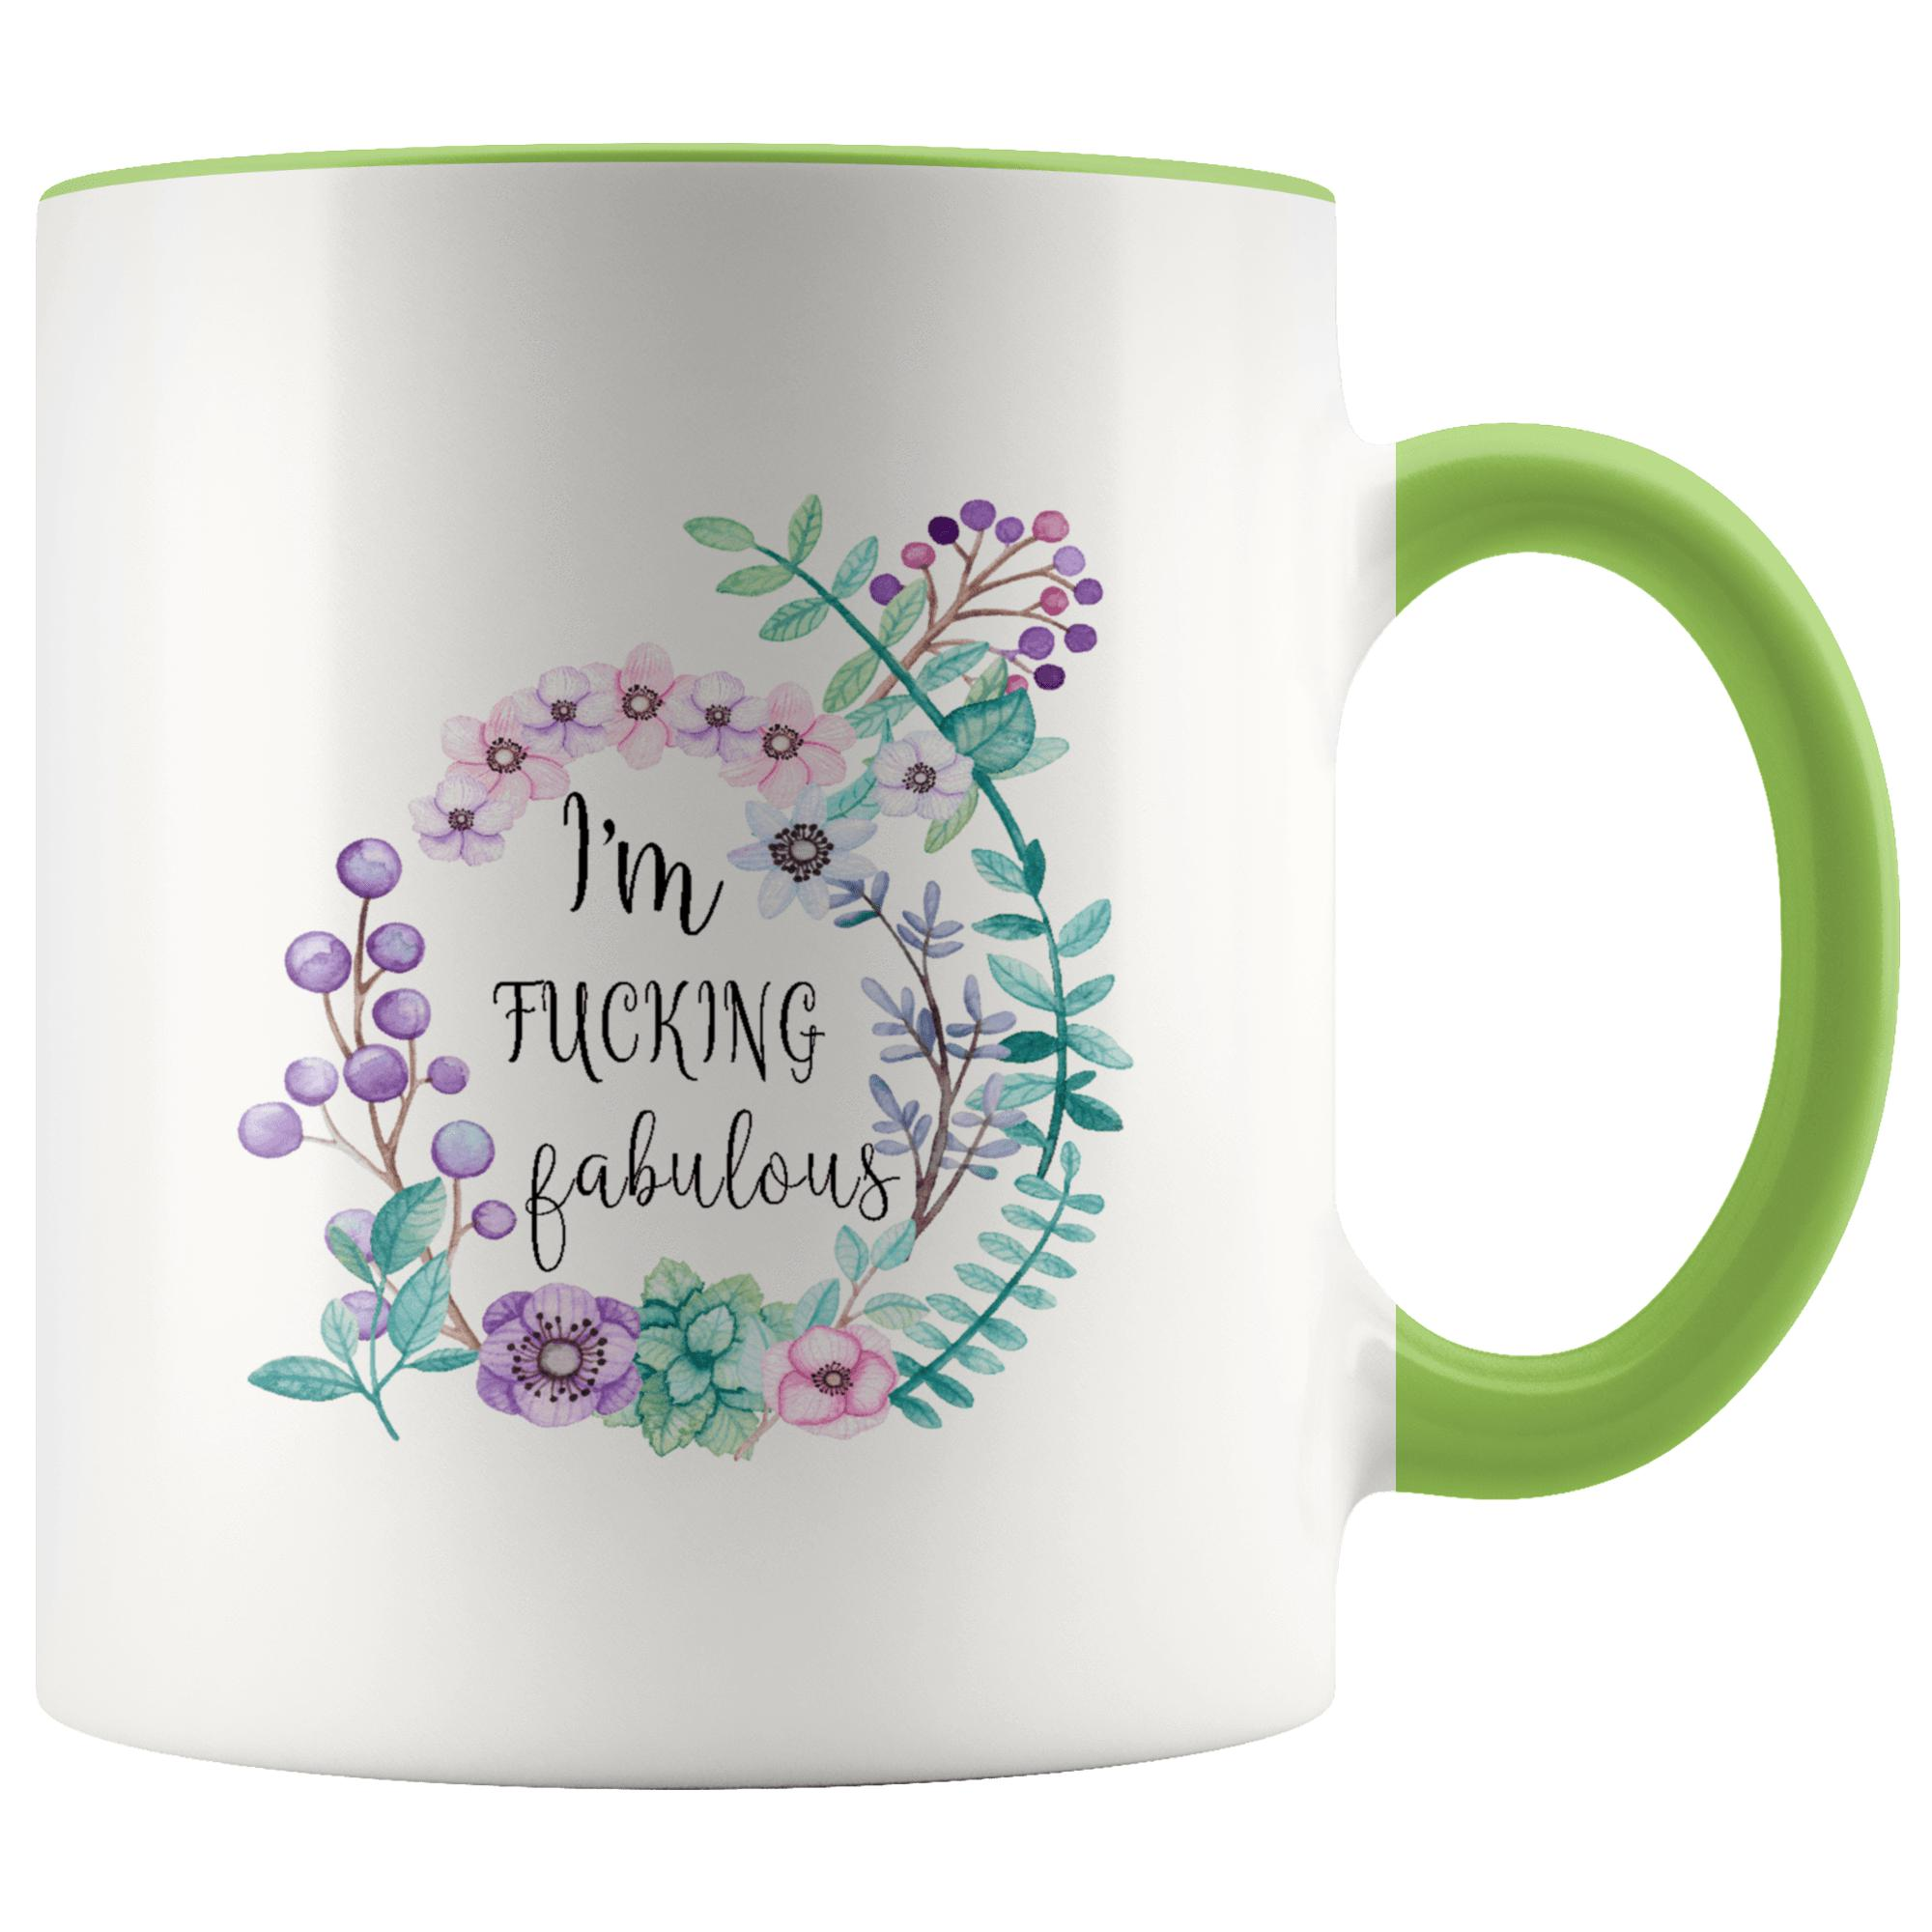 Rude Mugs - I'm Fucking Fabulous Mug..